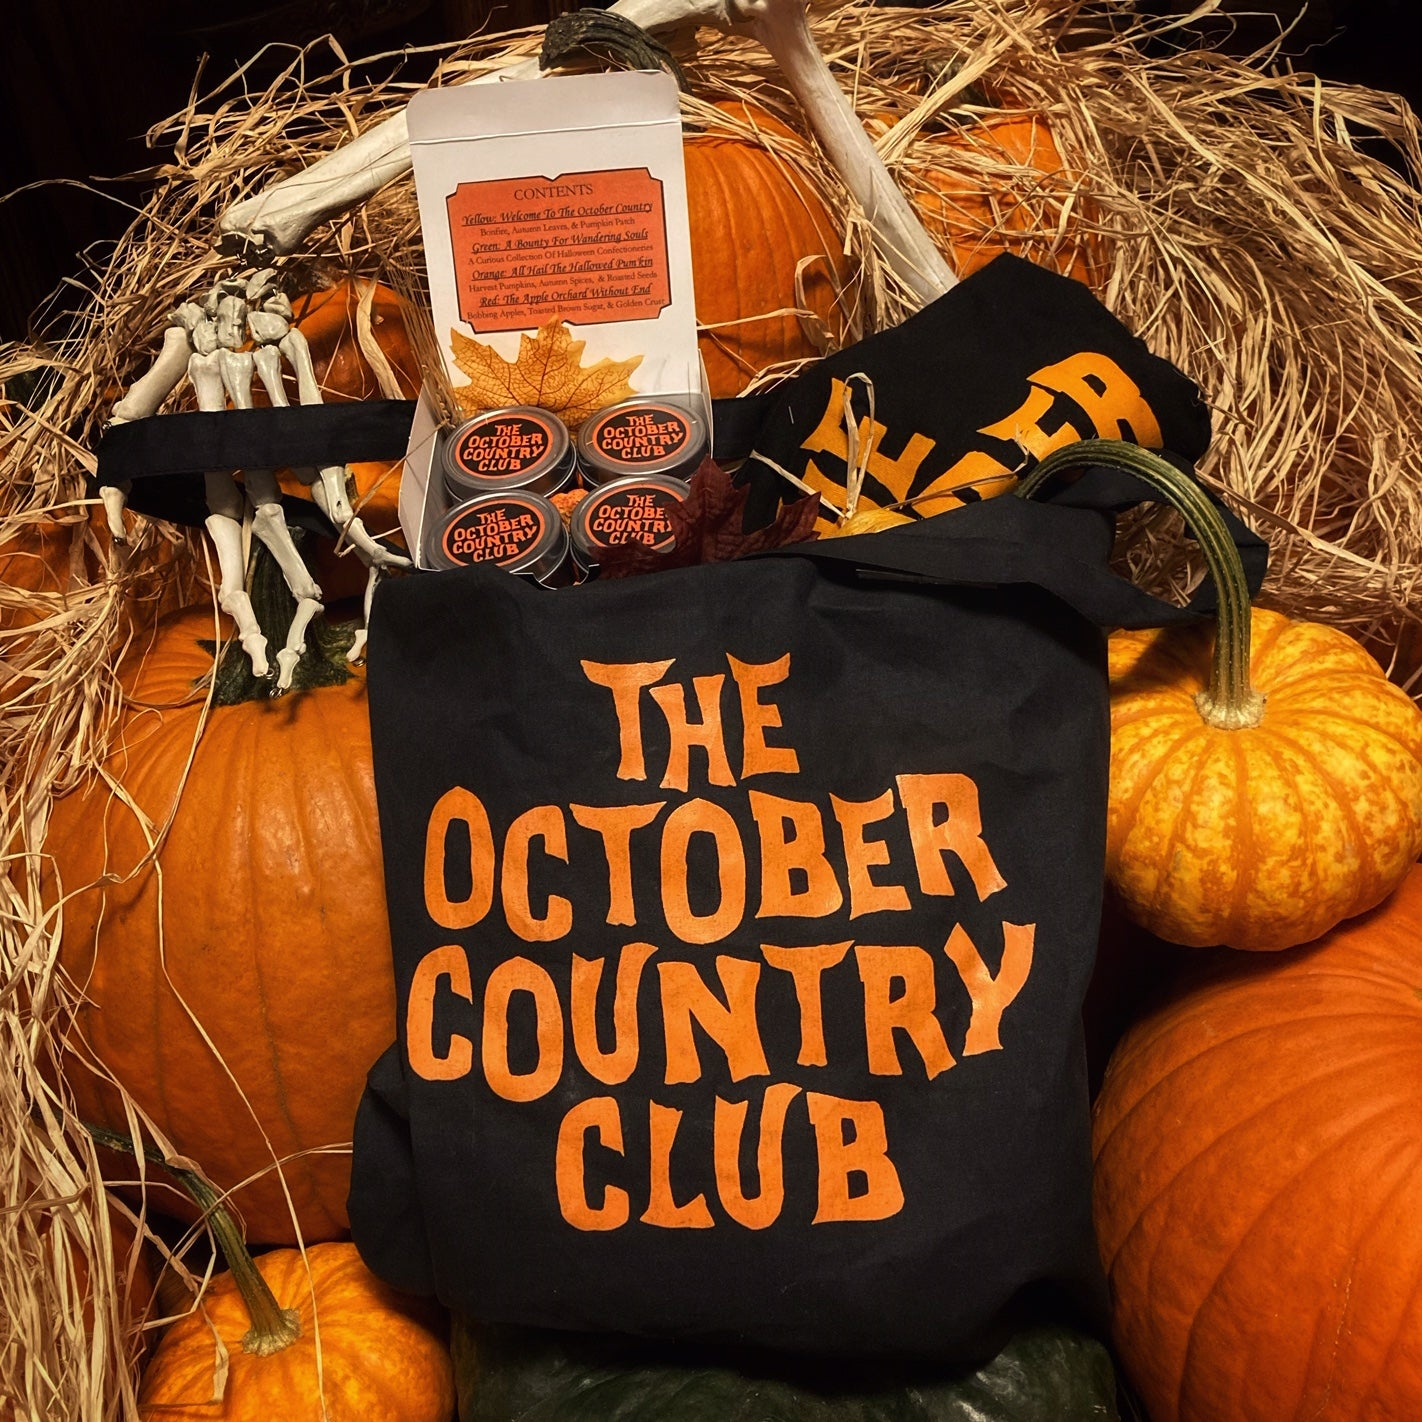 Welcome To The October Country Club Bundle (T-Shirt, Tote, & Candle Sampler)